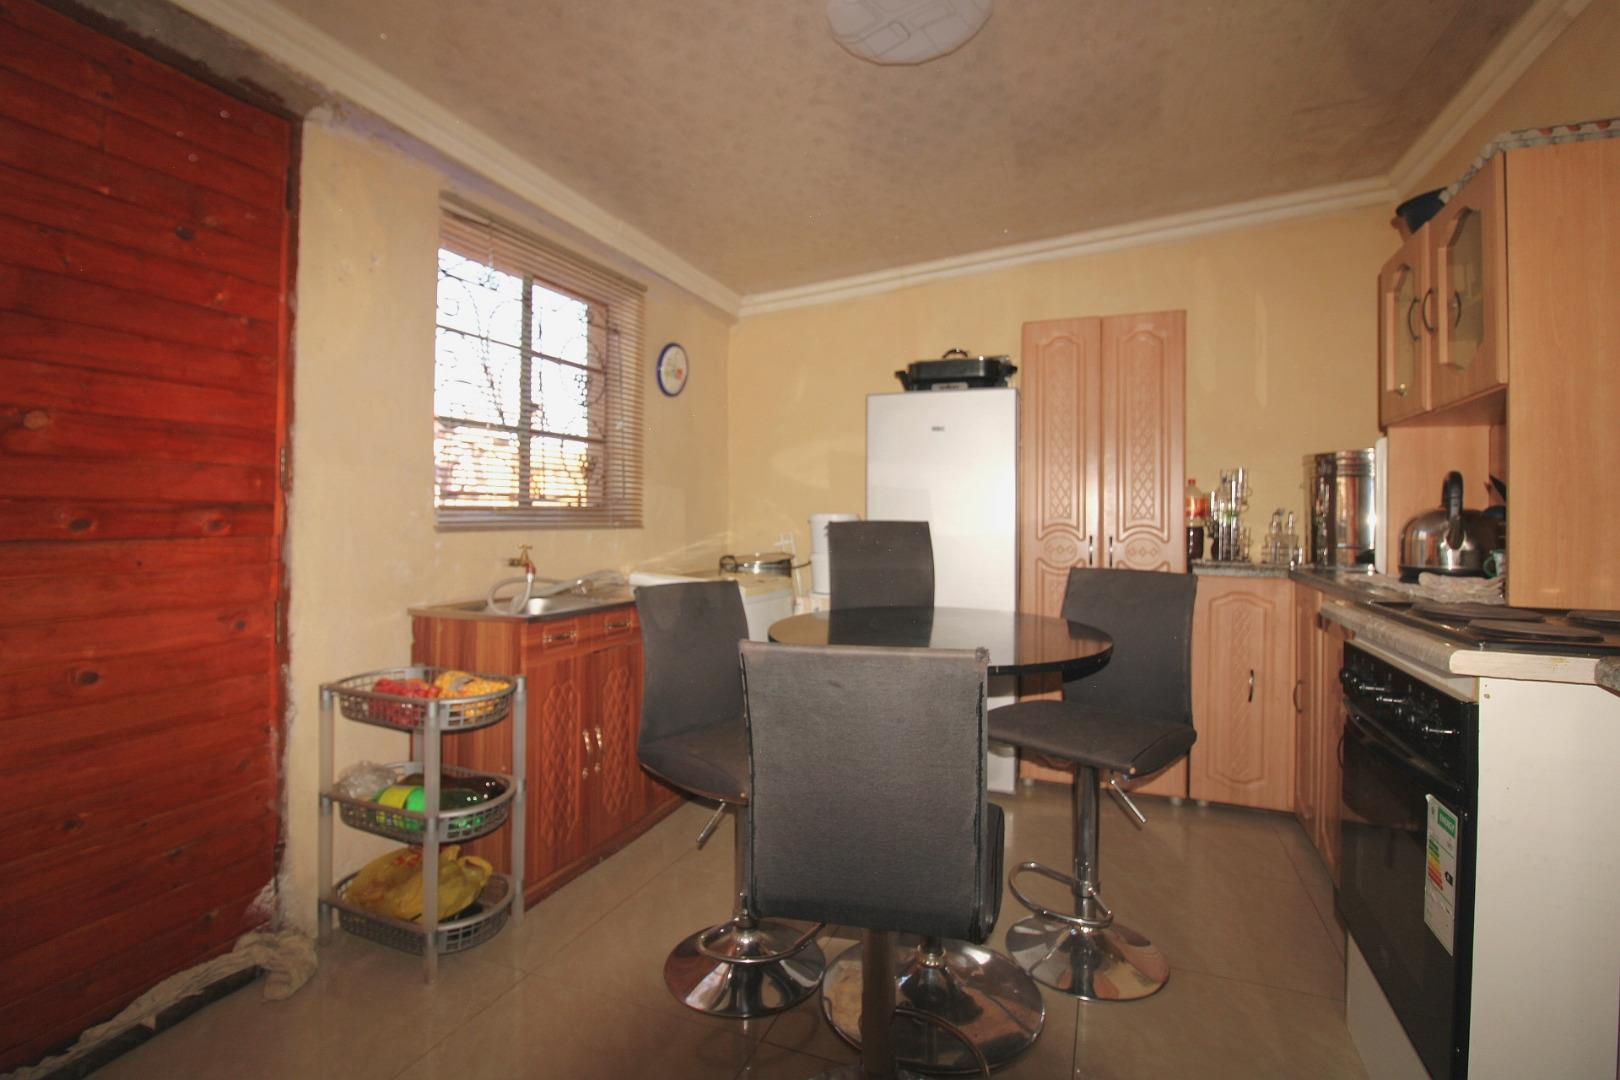 2 Bedroom House for Sale in Sebokeng Zone 7, Sebokeng - Gauteng